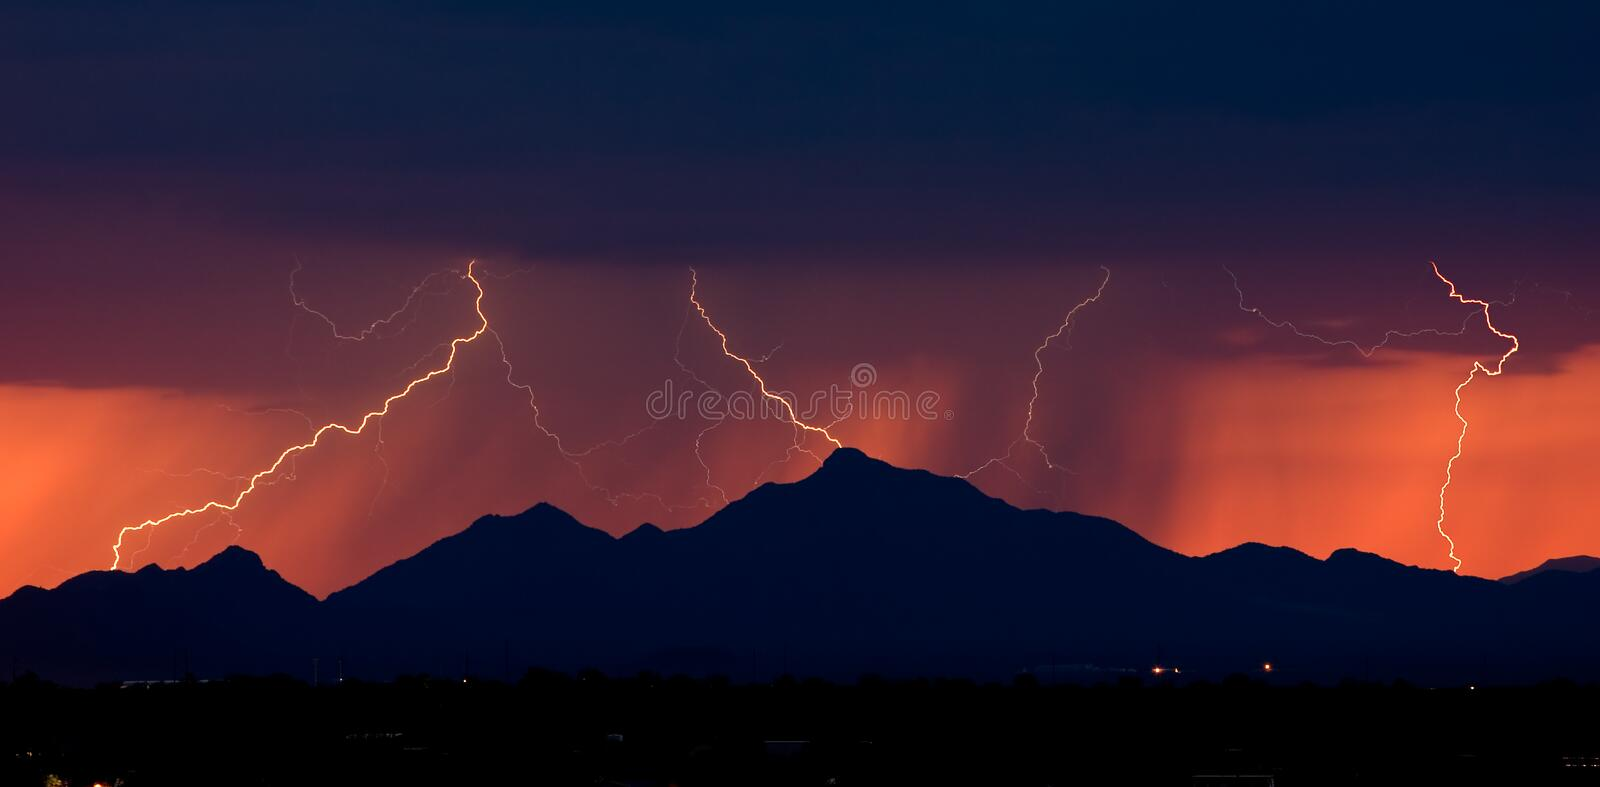 Distant Lightning at Sunset